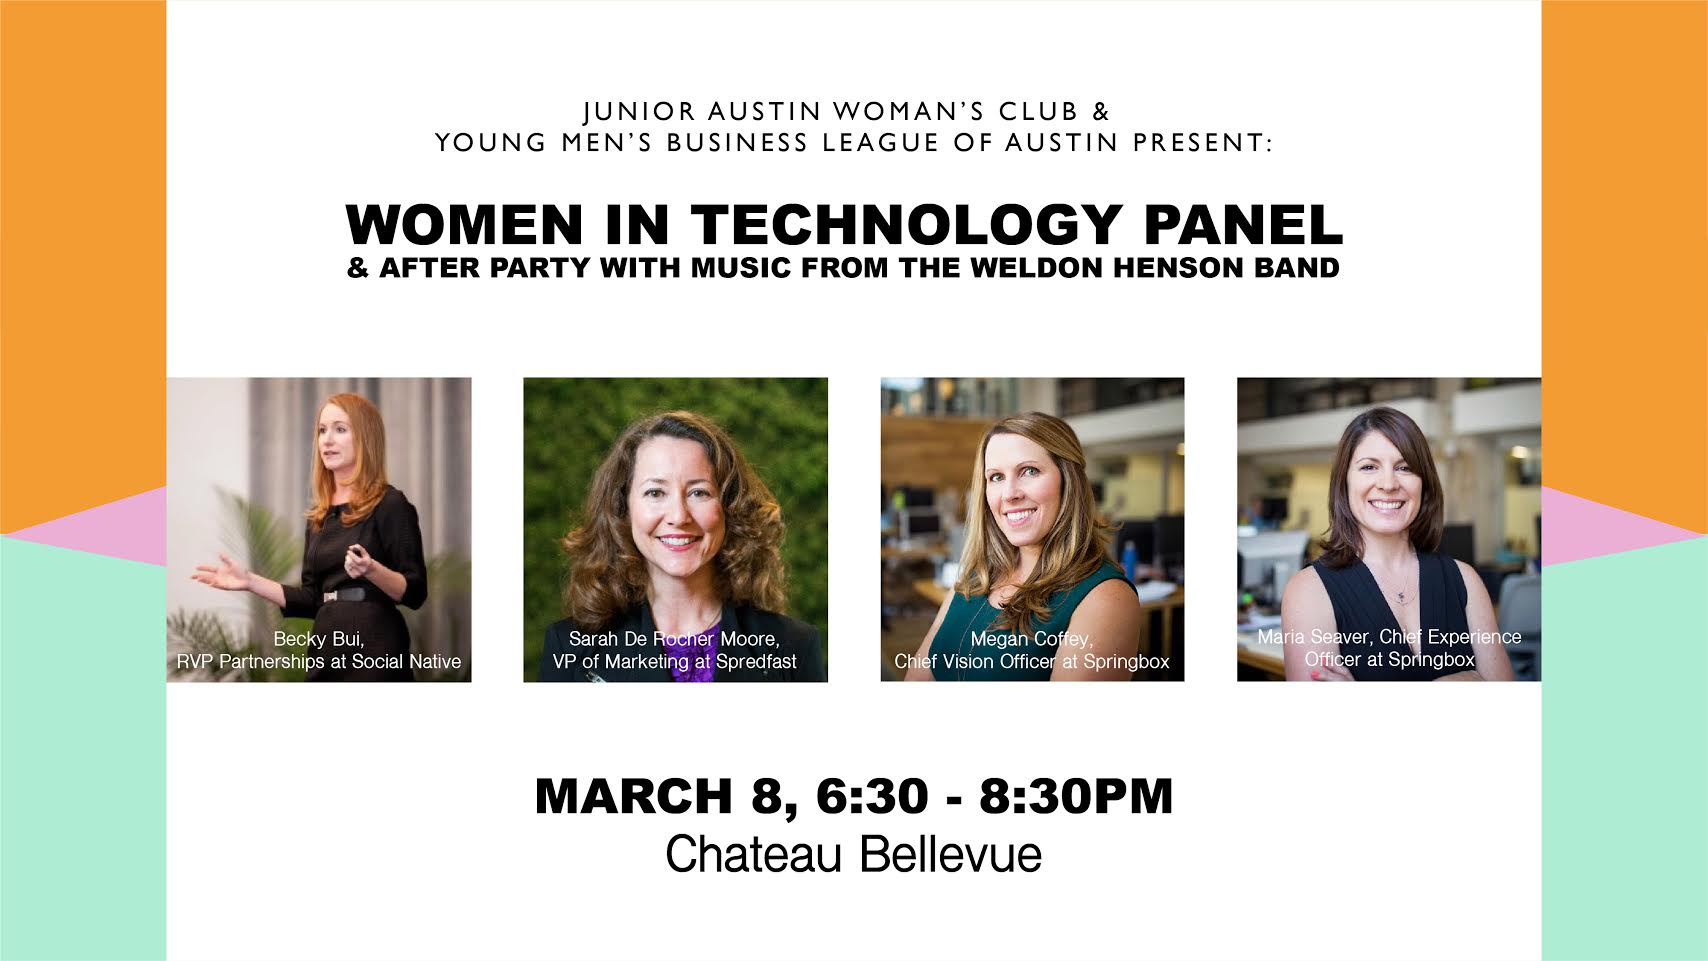 Flyer for Women in Technology Panel